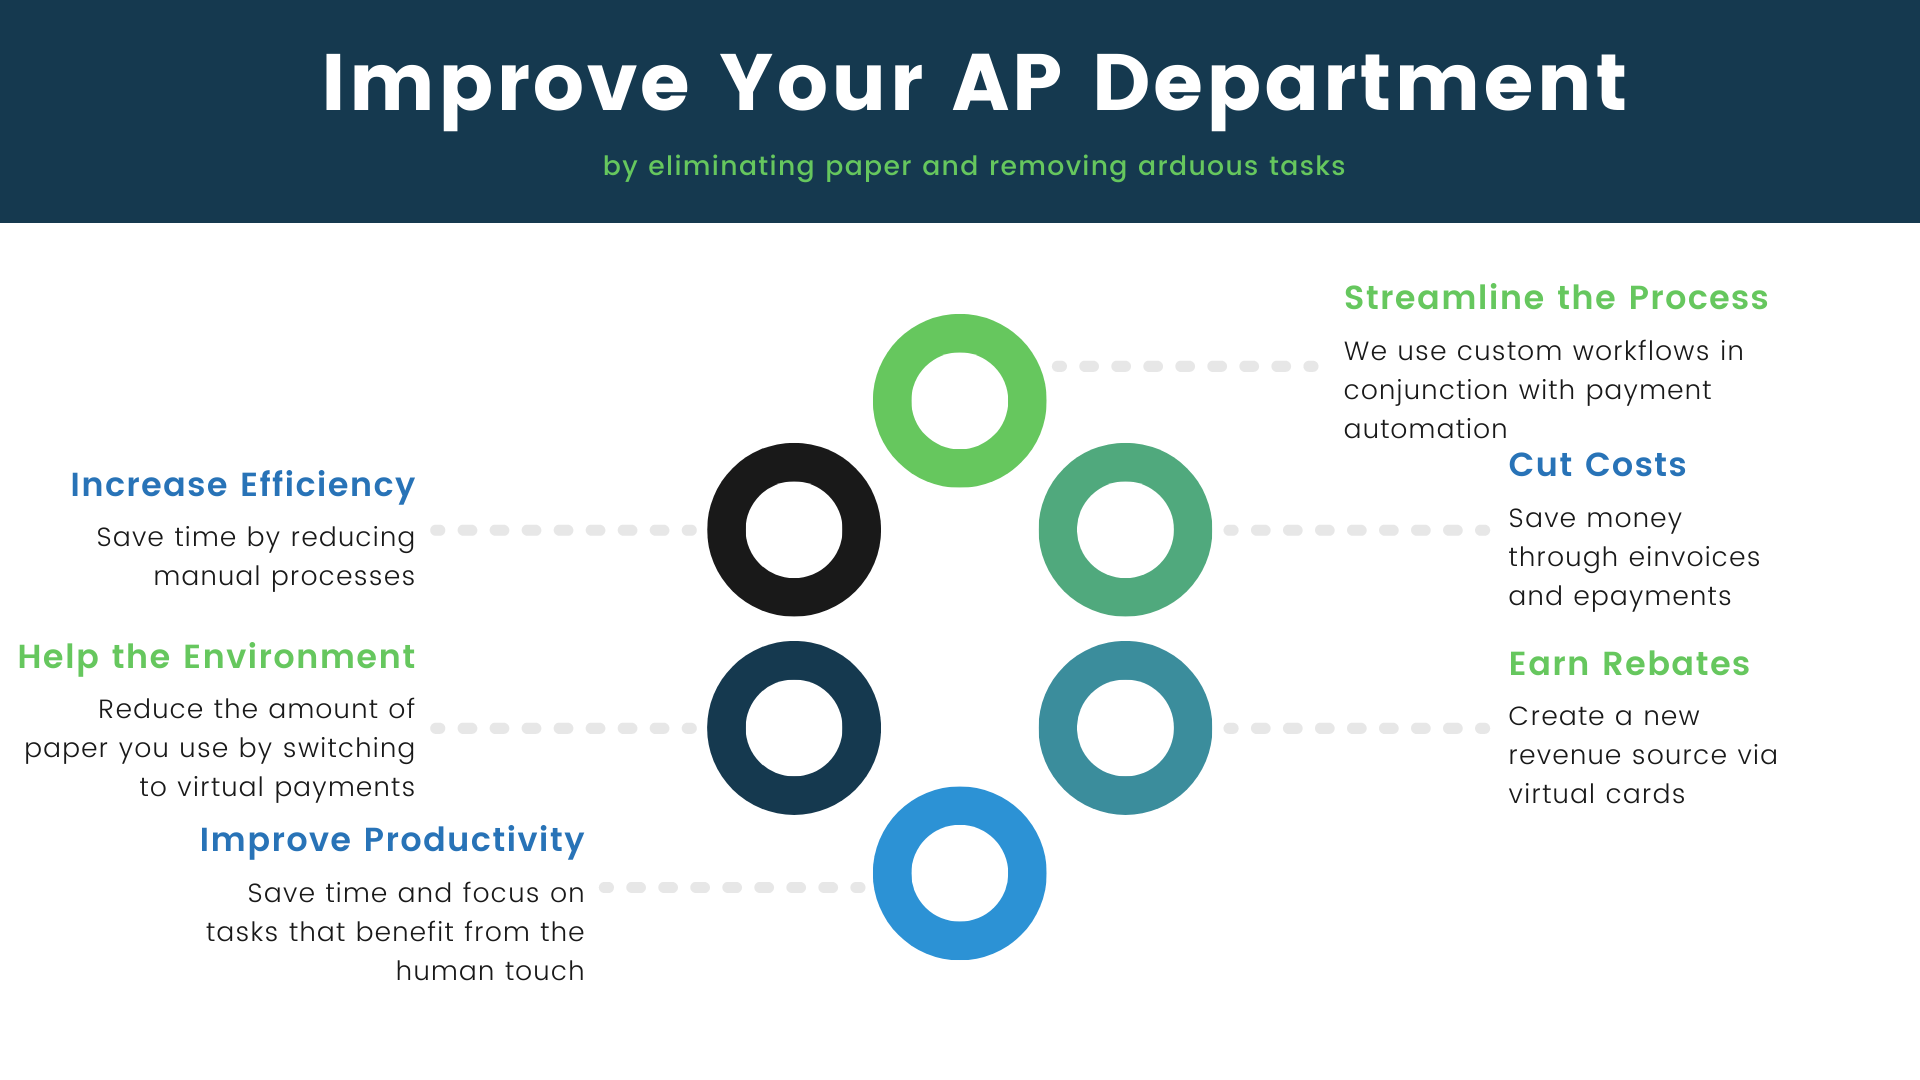 improve-your-ap-department-image